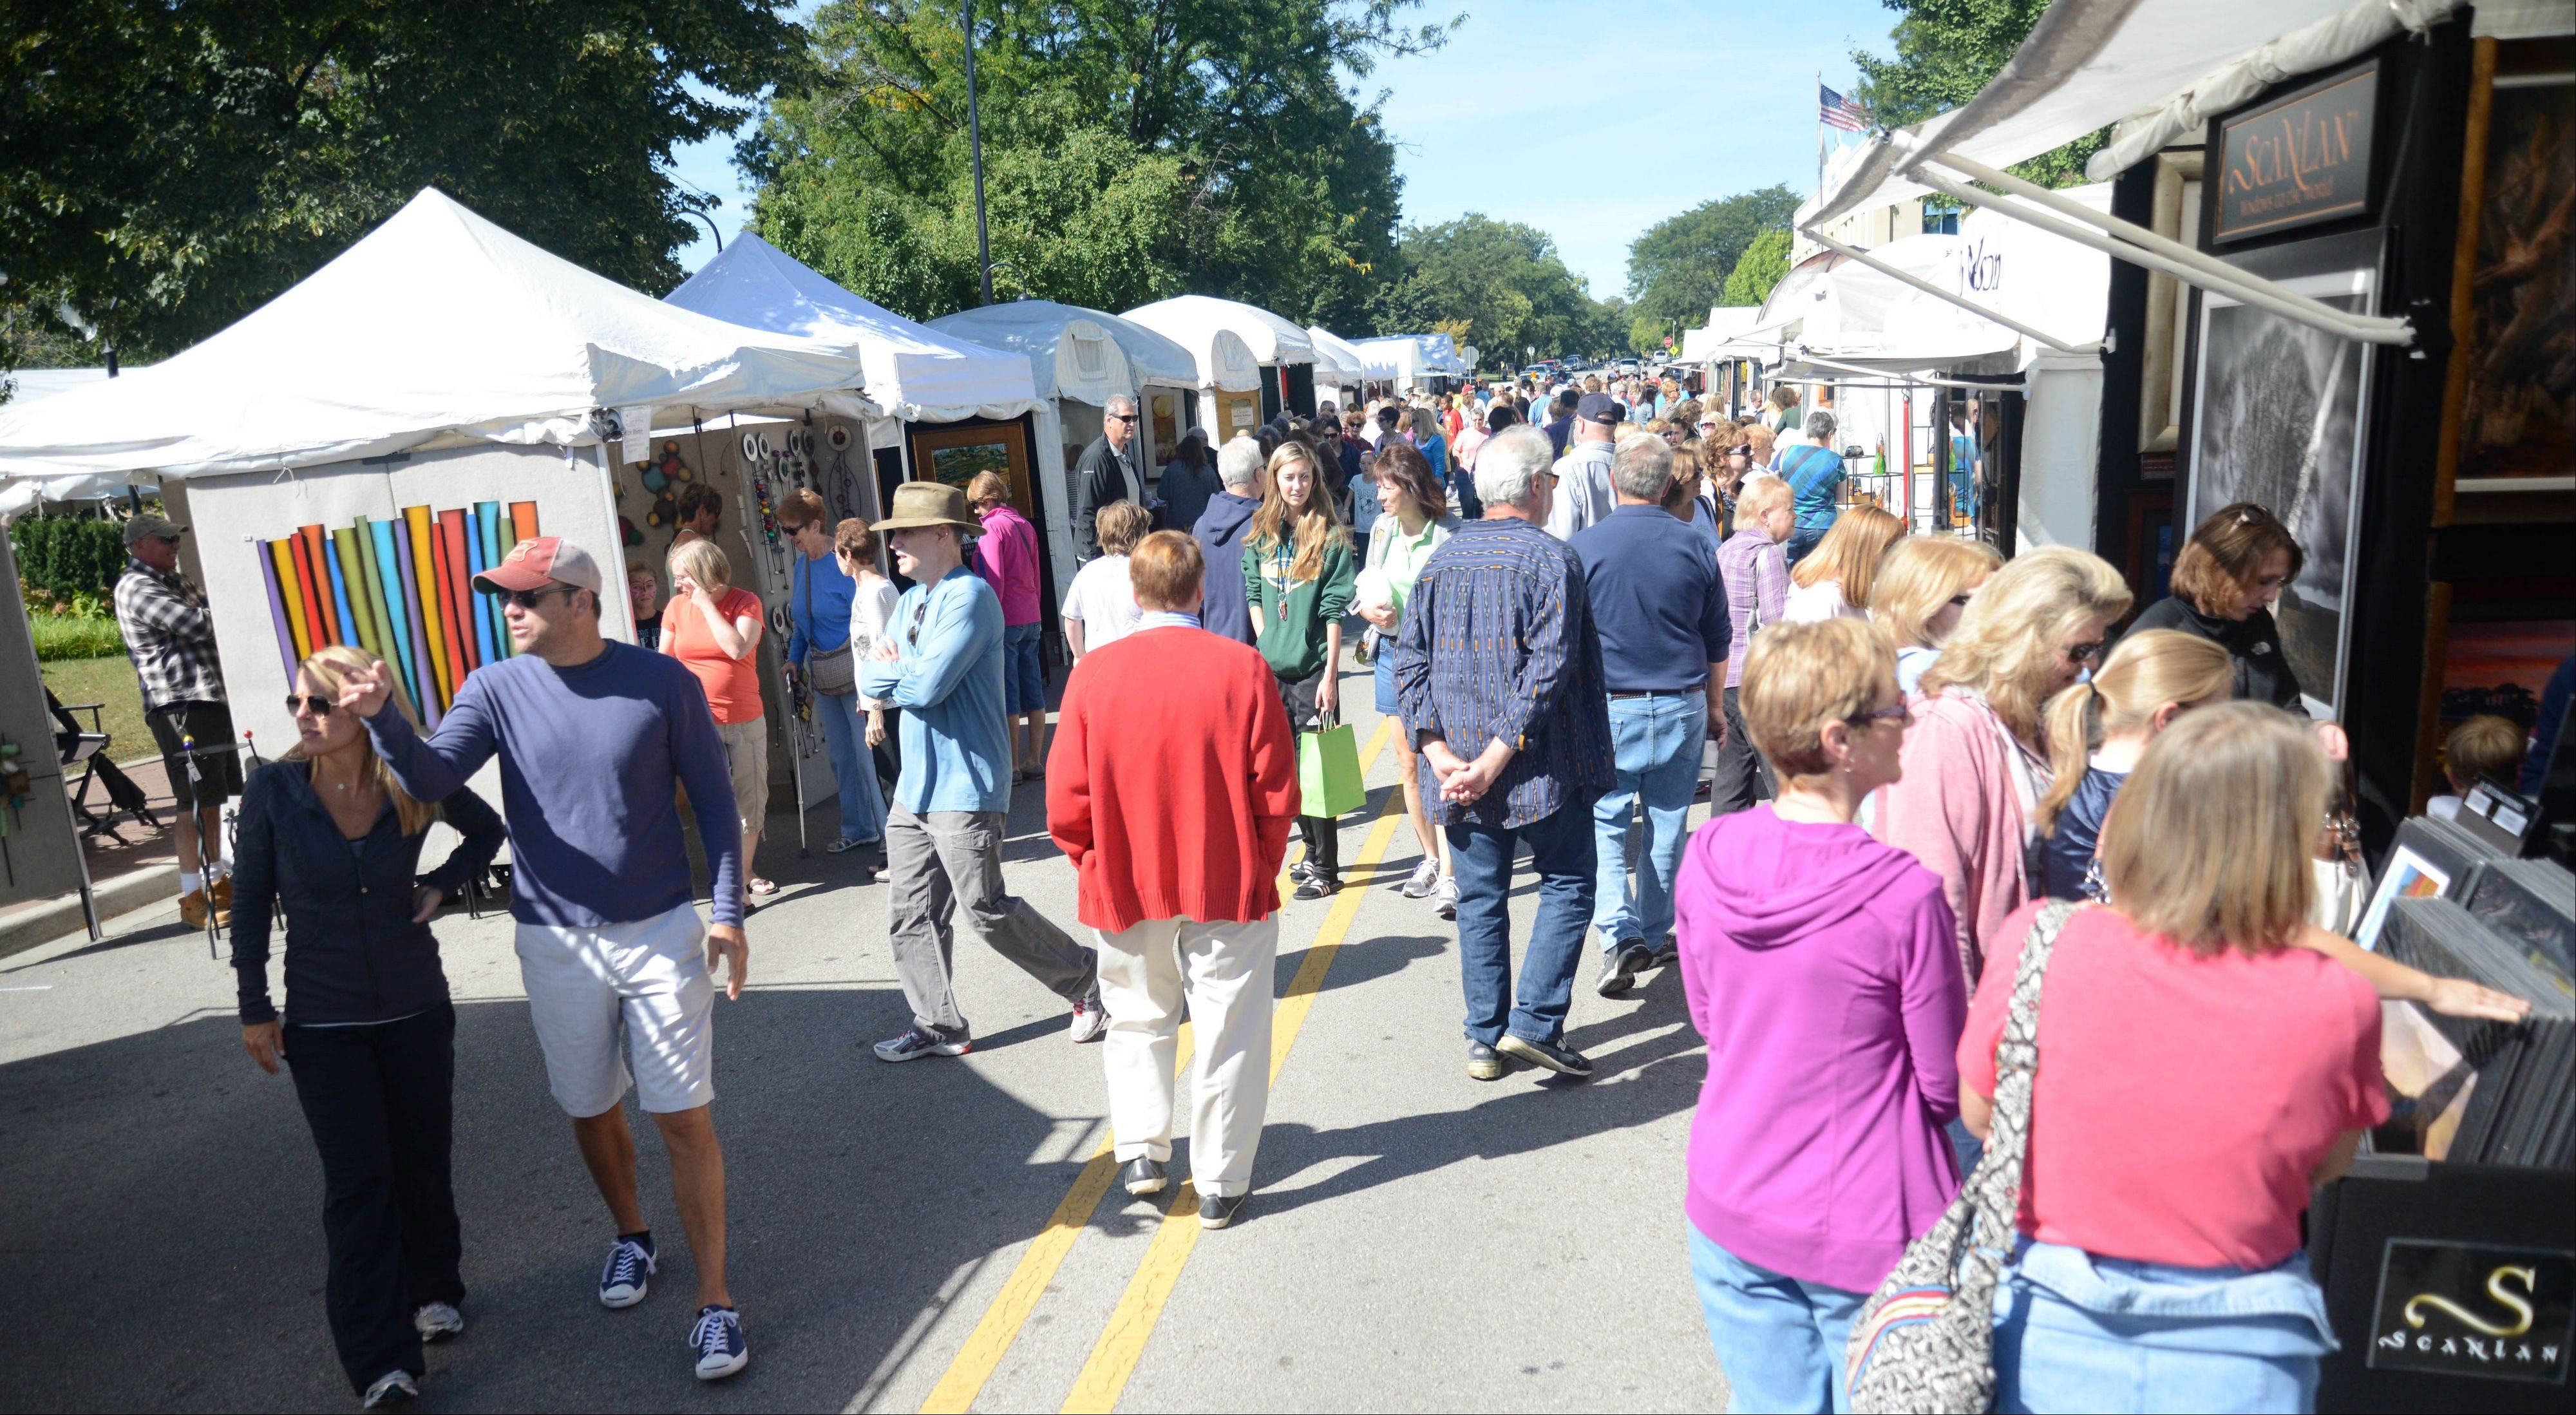 The Naperville Art League's annual Riverwalk Fine Art Fair in Naperville brought lots of people on Saturday to downtown Naperville. The fair features works by 135 artists.